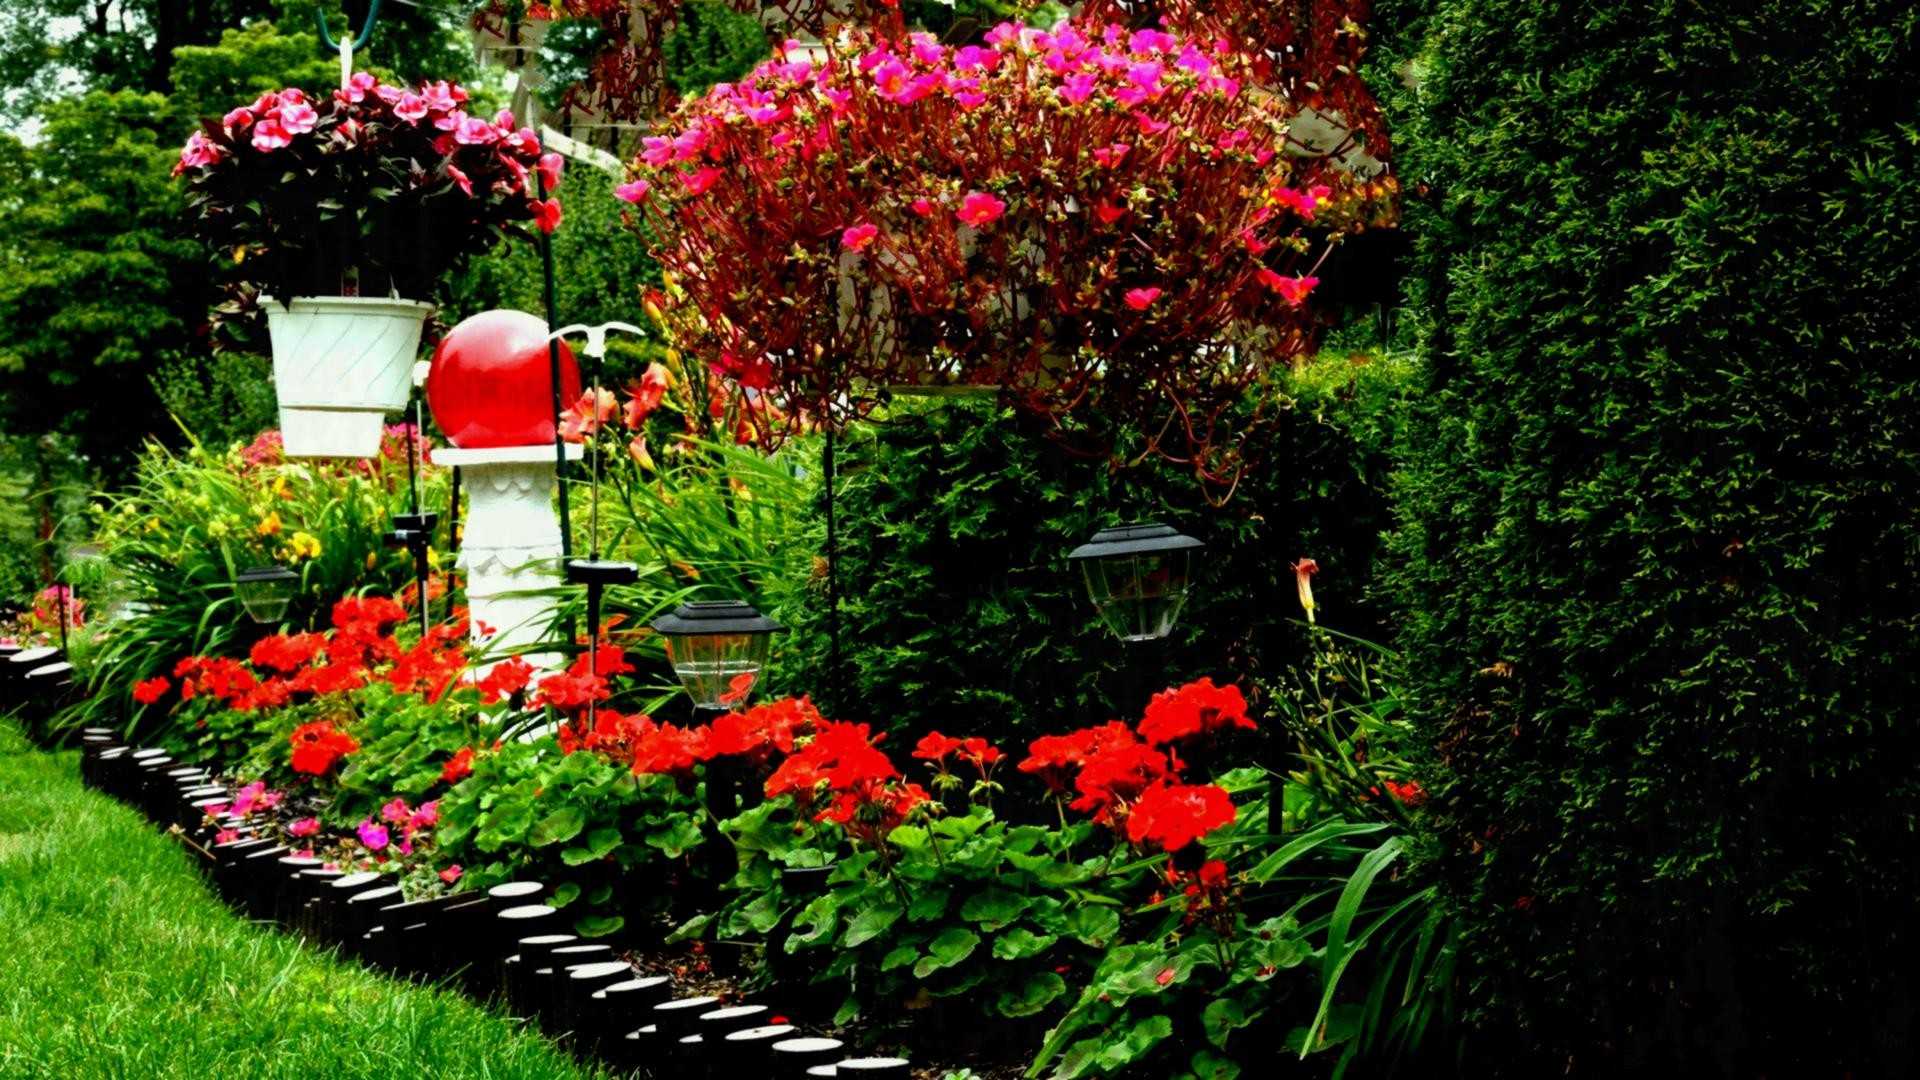 1920x1080 flower garden wallpaper free download http refreshrose blogspot com